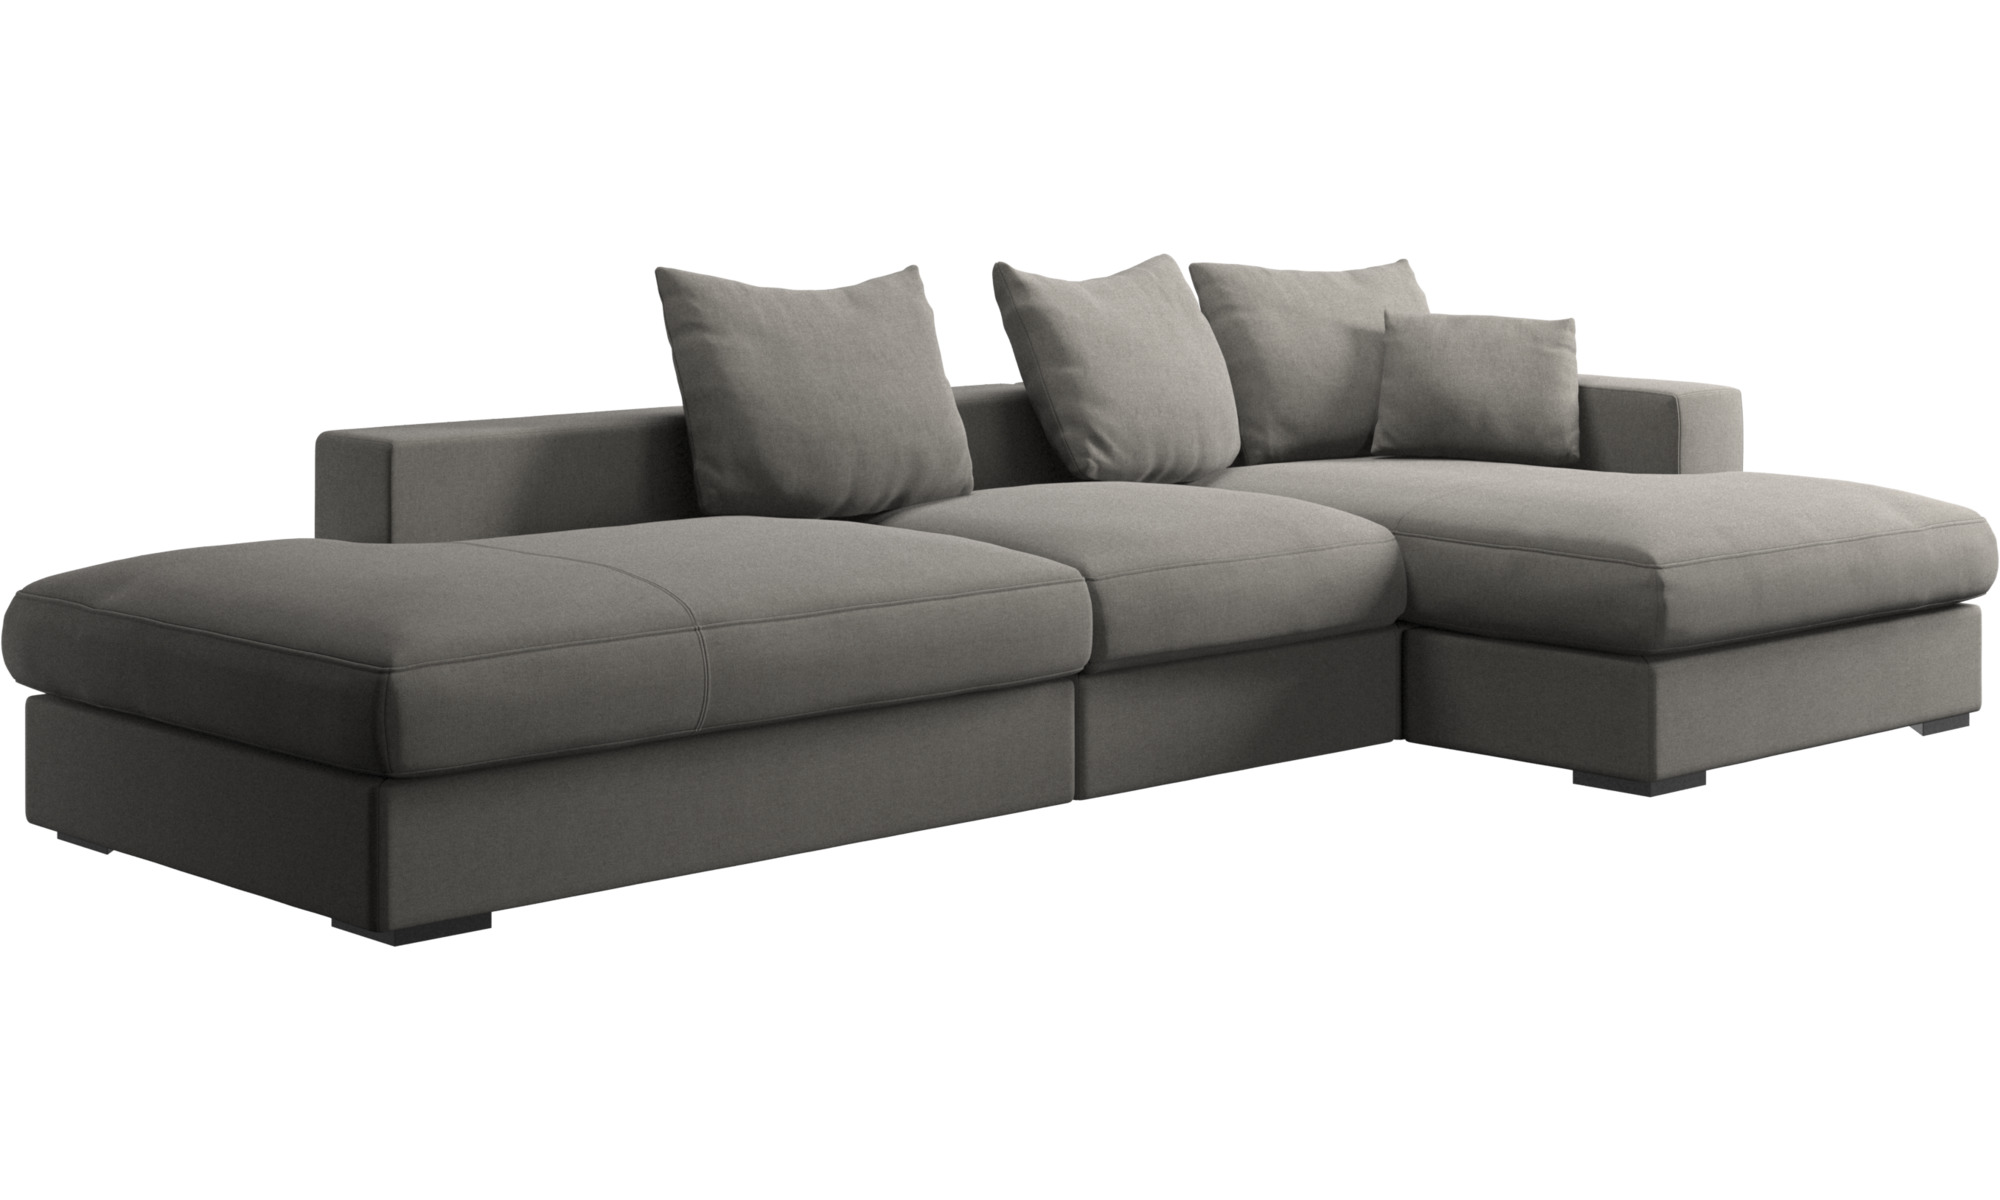 3 sitzer sofas cenova sofa mit lounge und ruhemodul. Black Bedroom Furniture Sets. Home Design Ideas